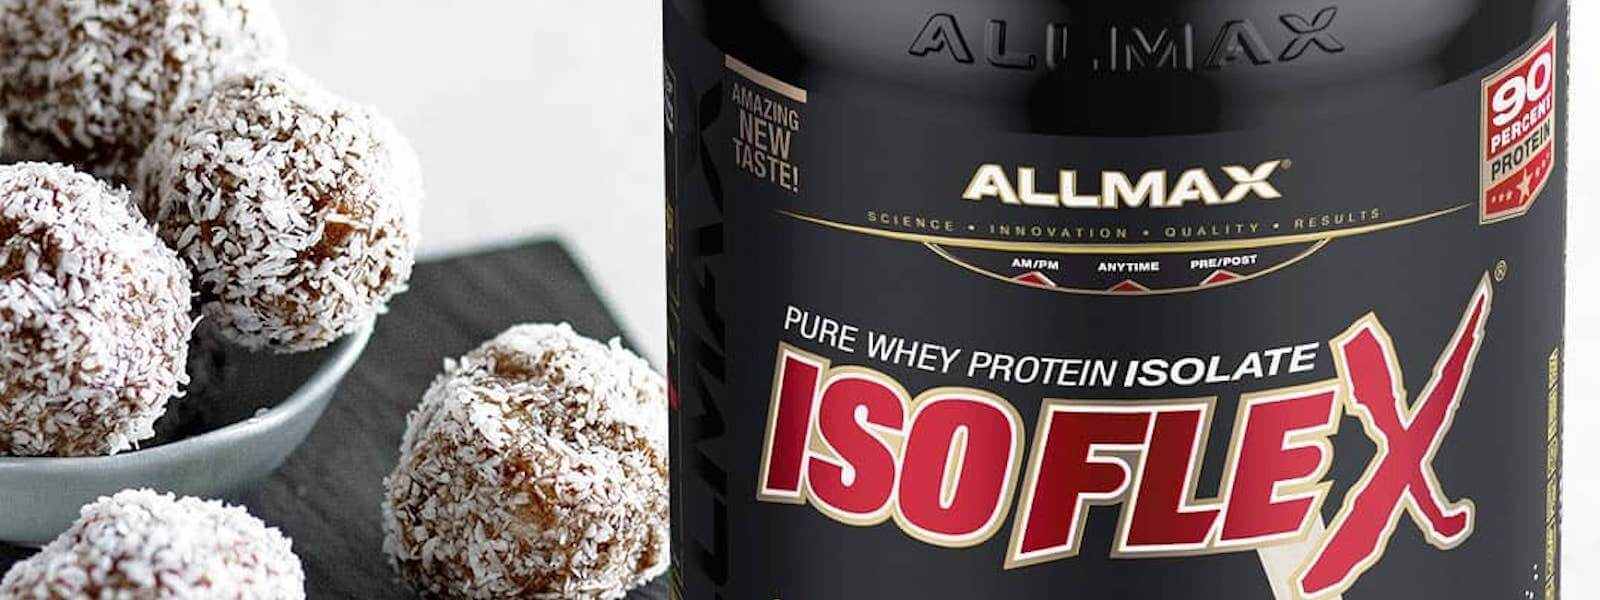 Recipe Allmax Isoflex Coconut Balls Supplement Source